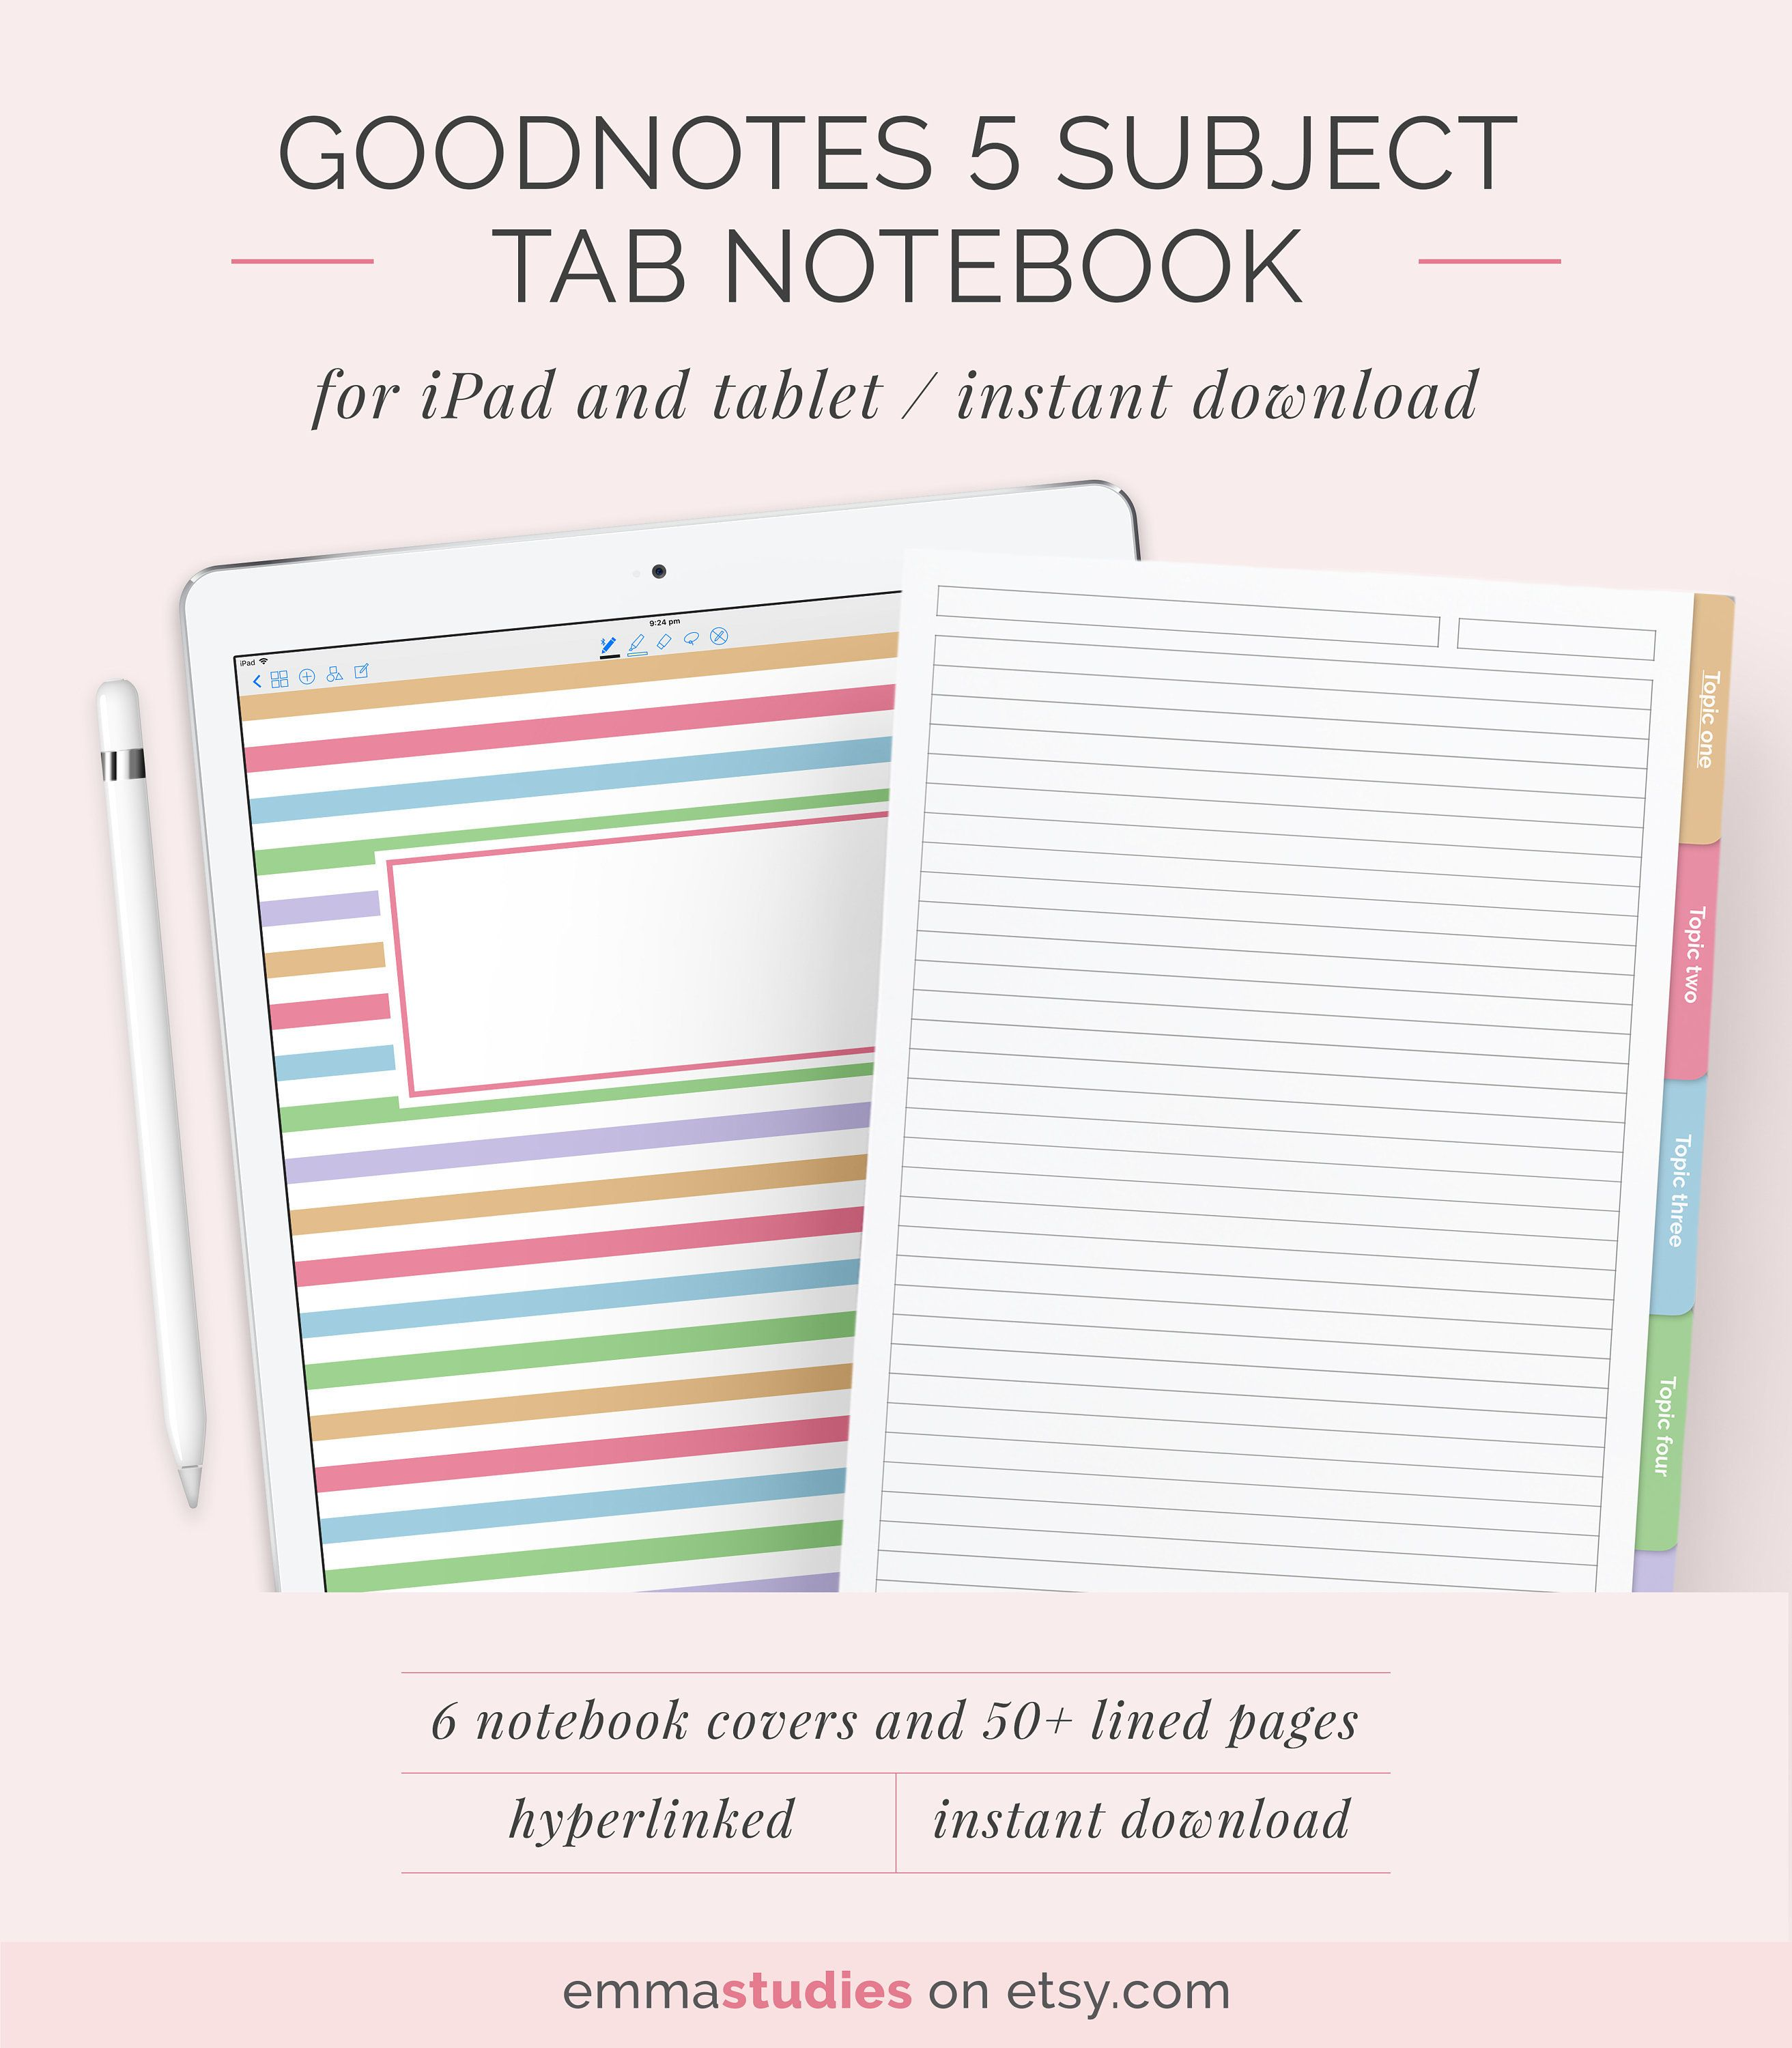 Goodnotes 5 Subject Student Notebook Template Digital Lined Ruled Customisable Notebook Ipad College School Instant Download Notebook Templates Student Notebooks Customizable Notebooks